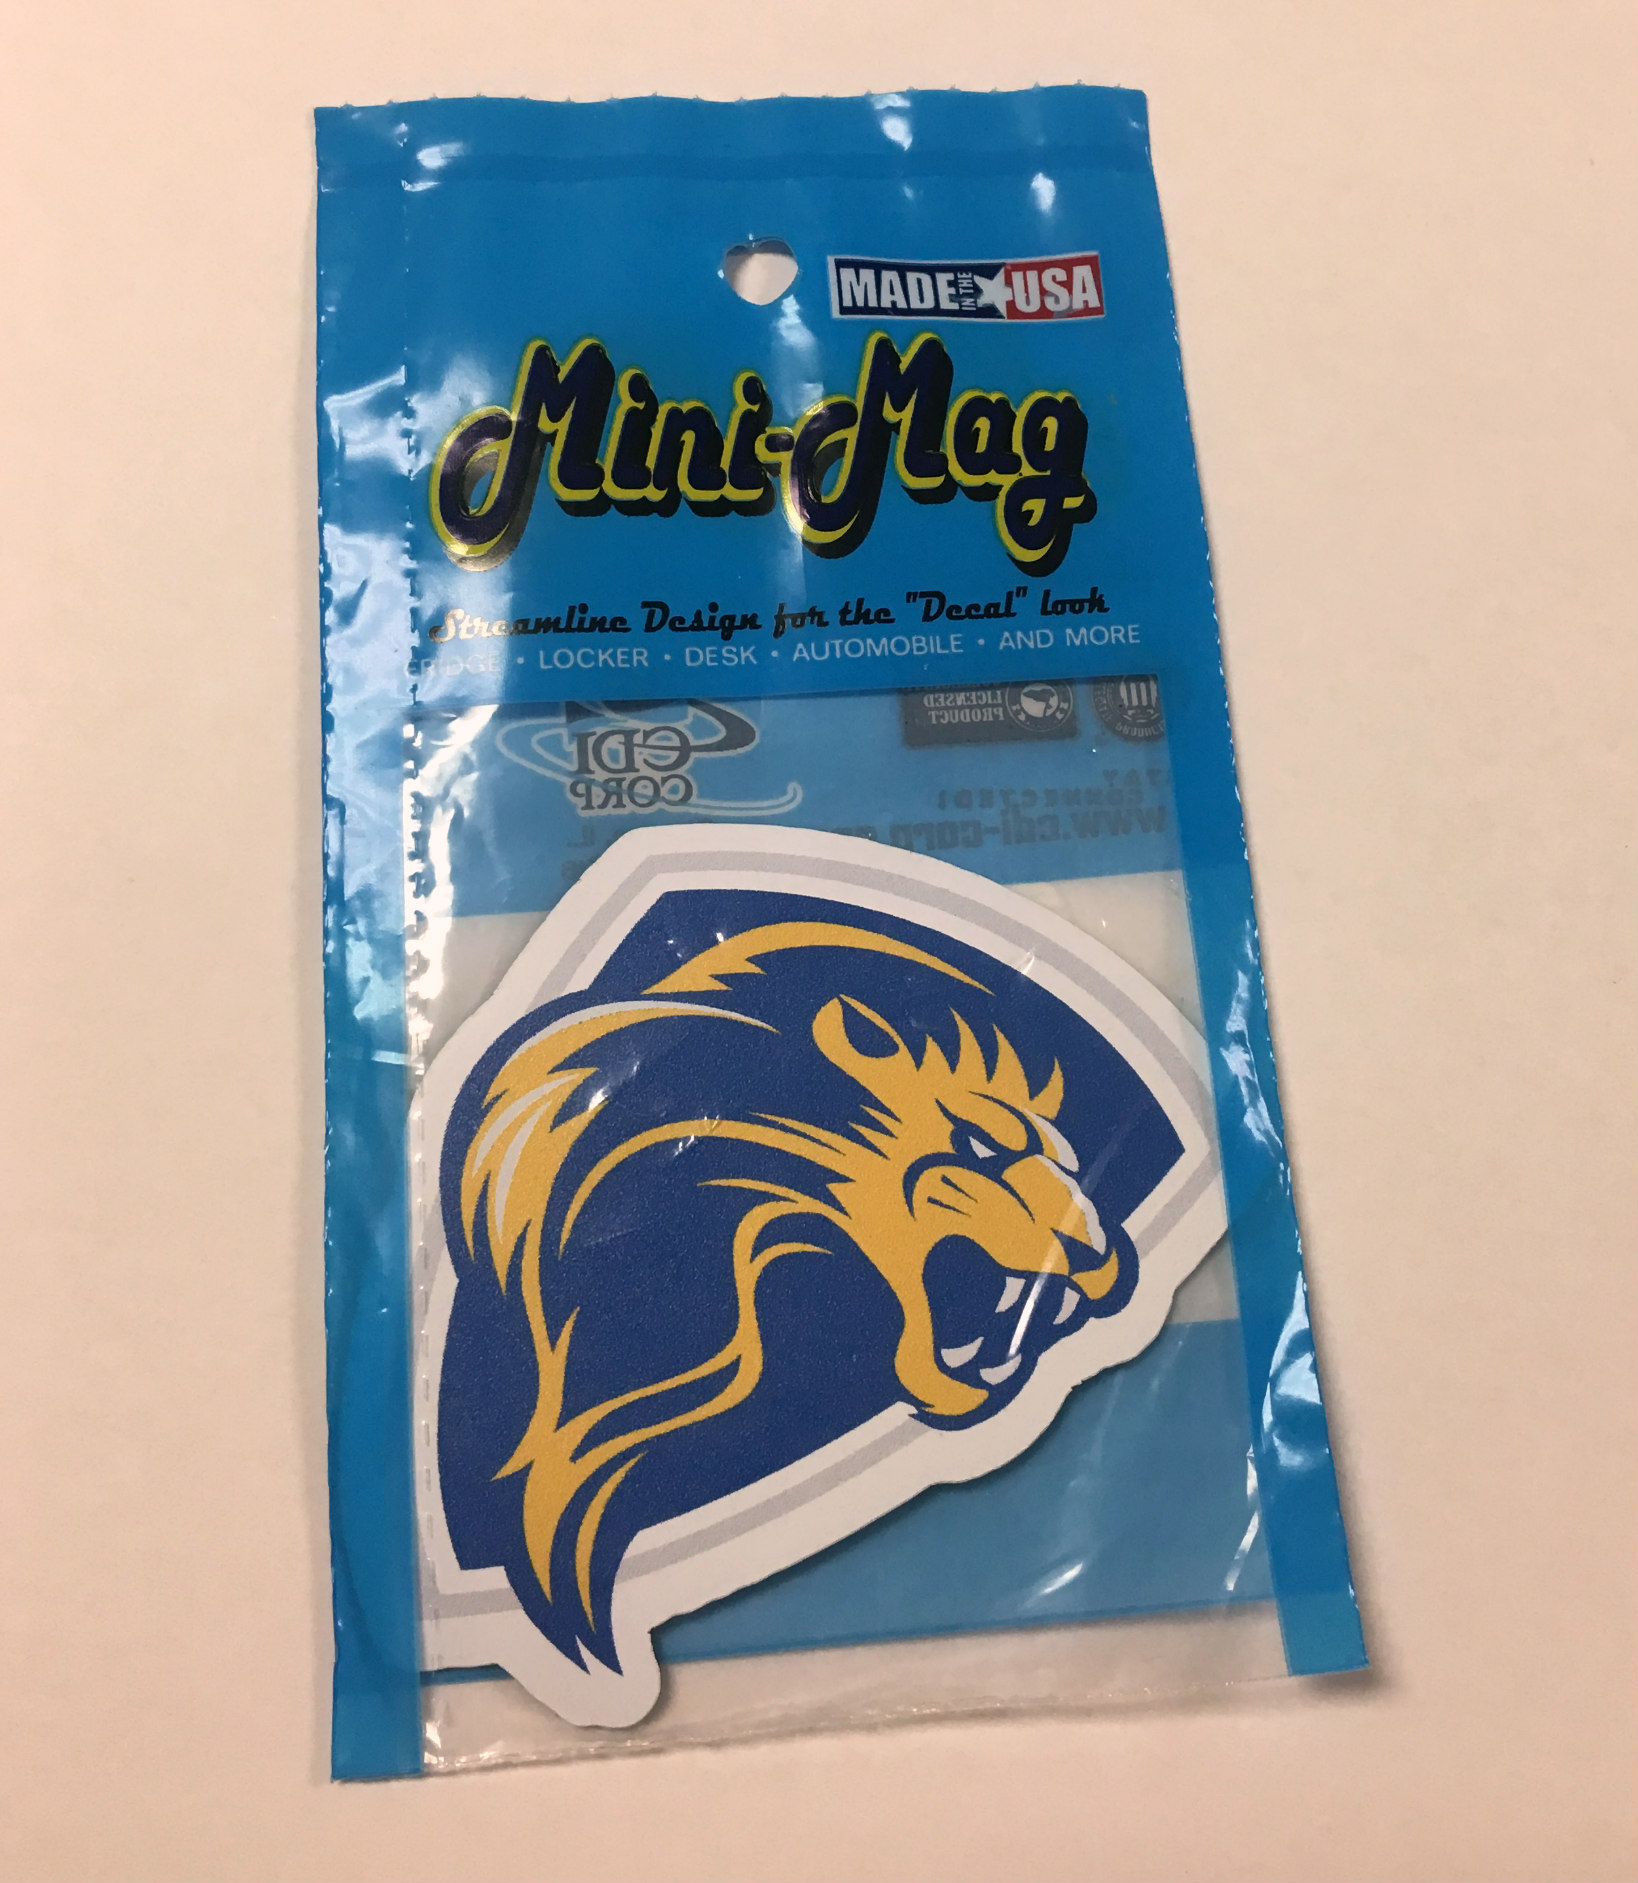 Image for the ColorShock Lion Shield Magnet product